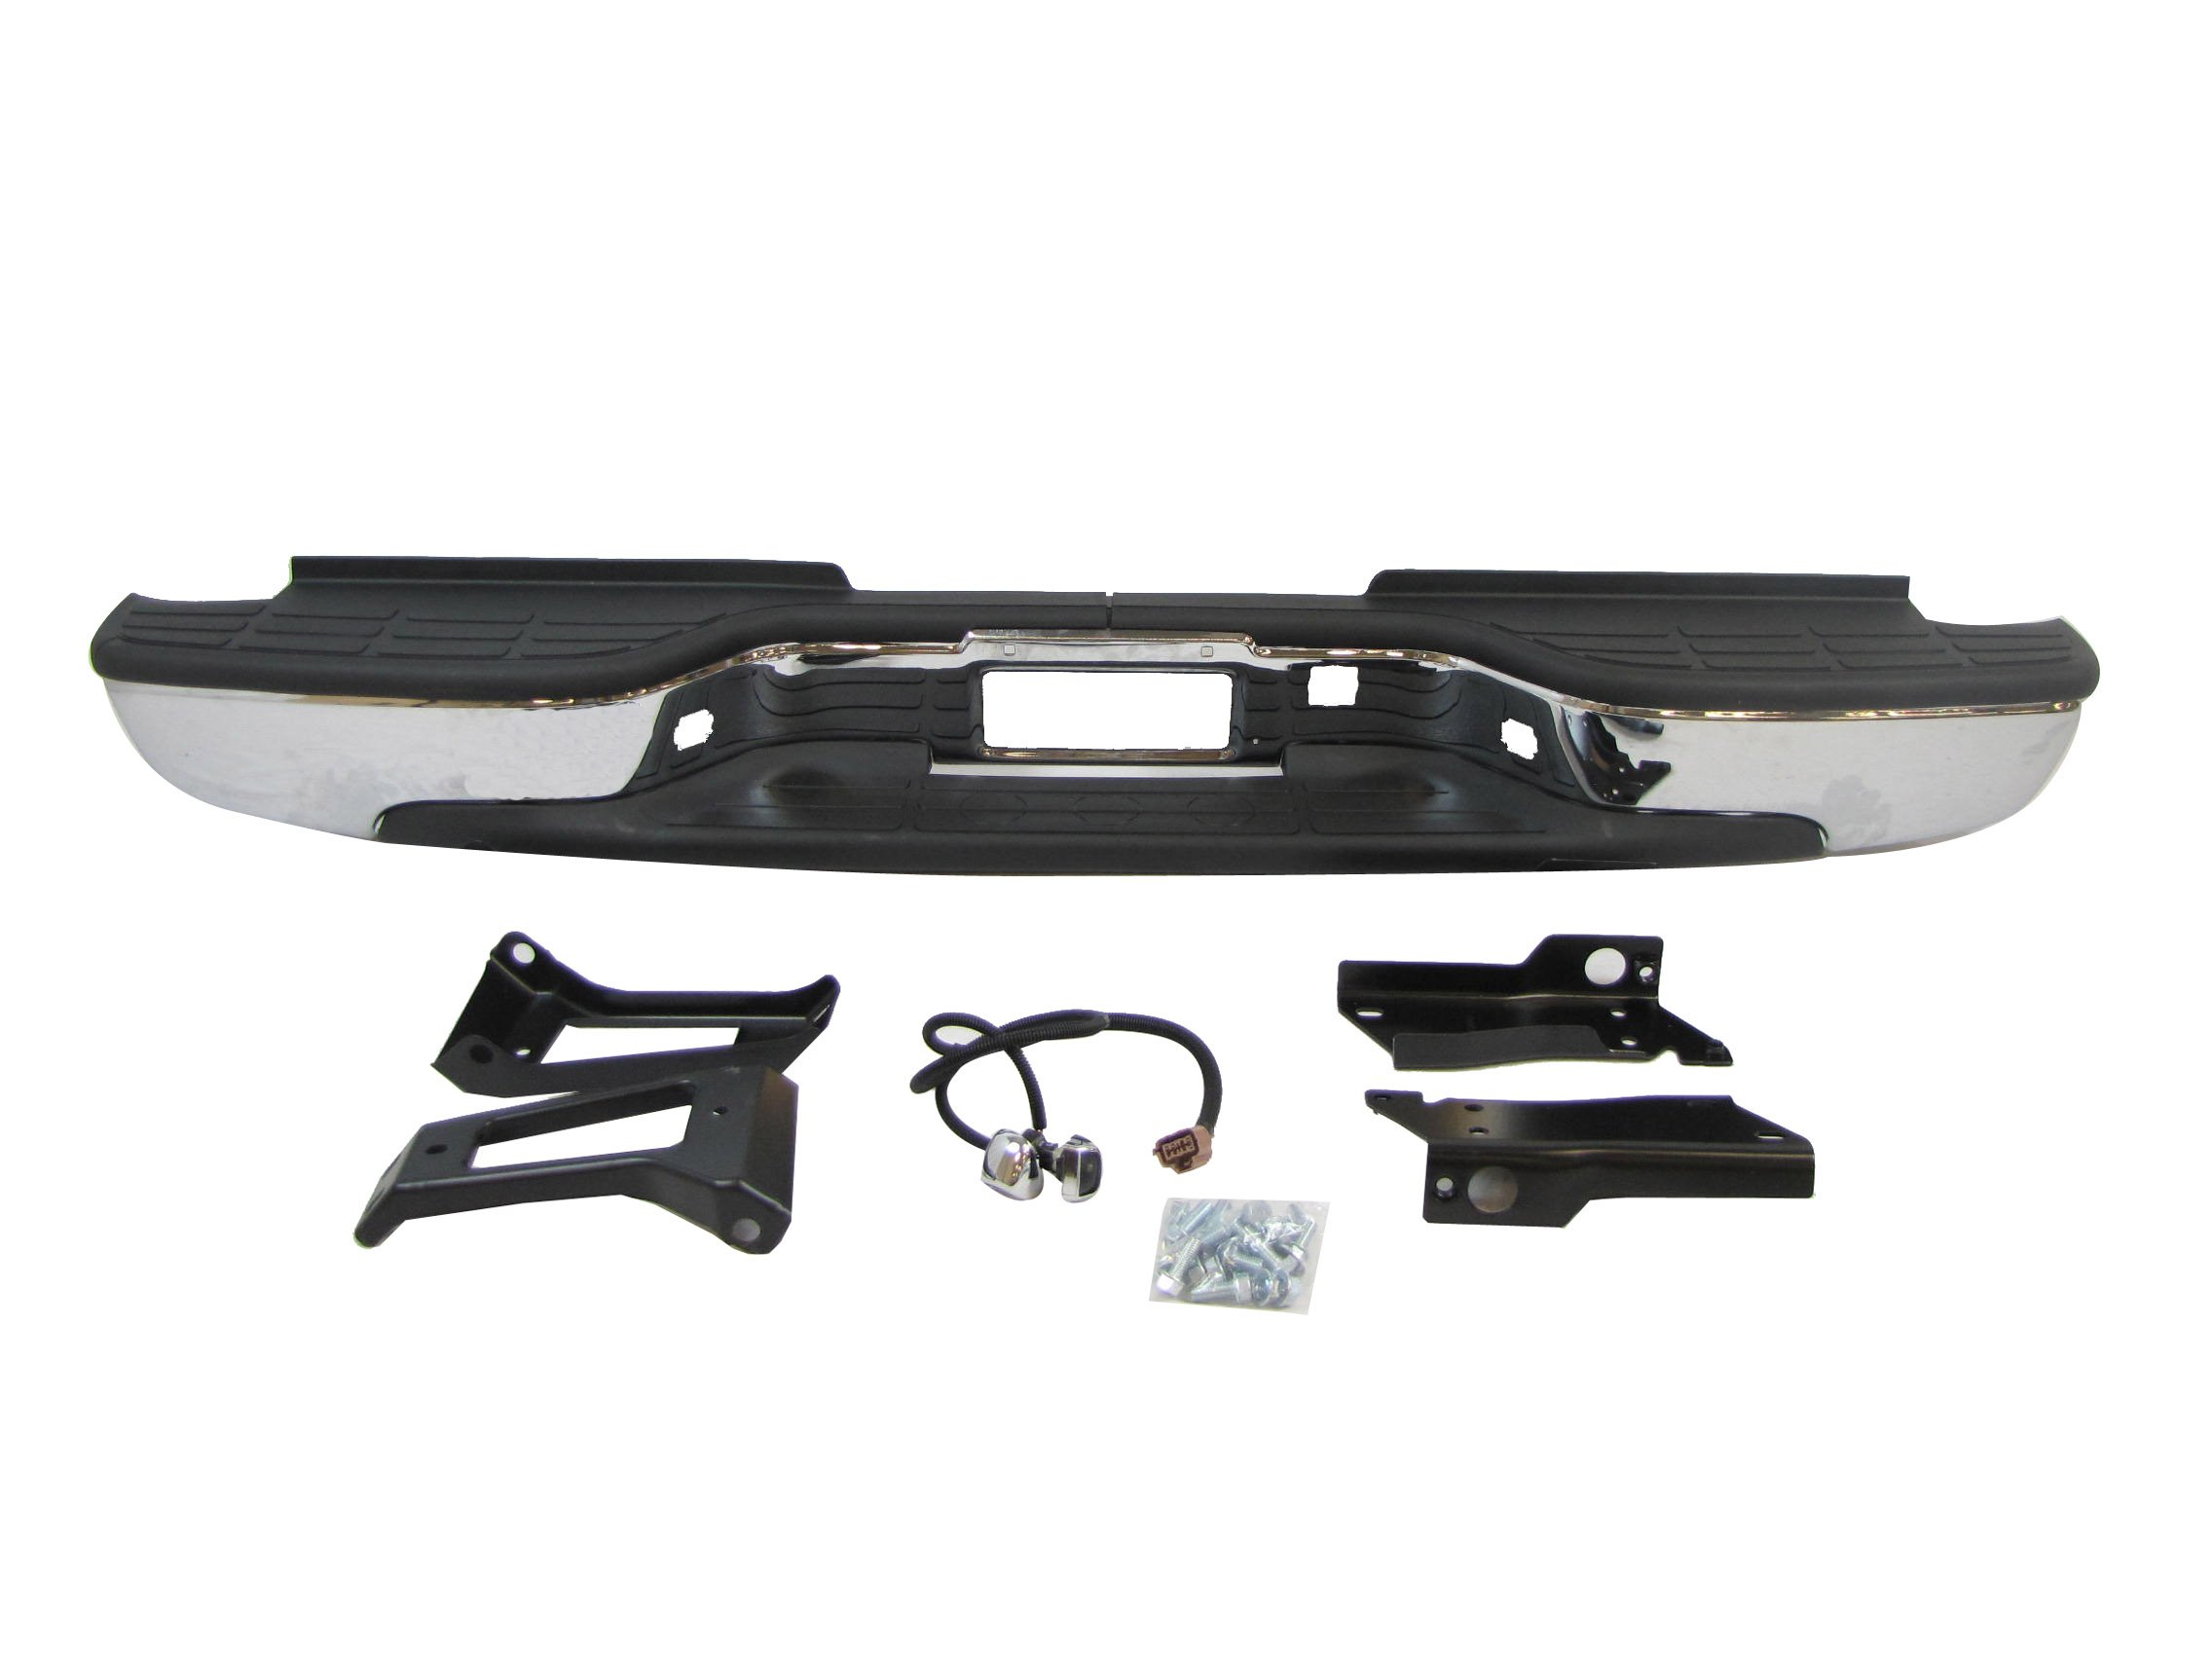 New Rear Step Bumper ASSY Chrome 1999-2006 Chevy Siverado Gmc Sierra 2500HD 3500 by NEW AFTERMARKET PARTS